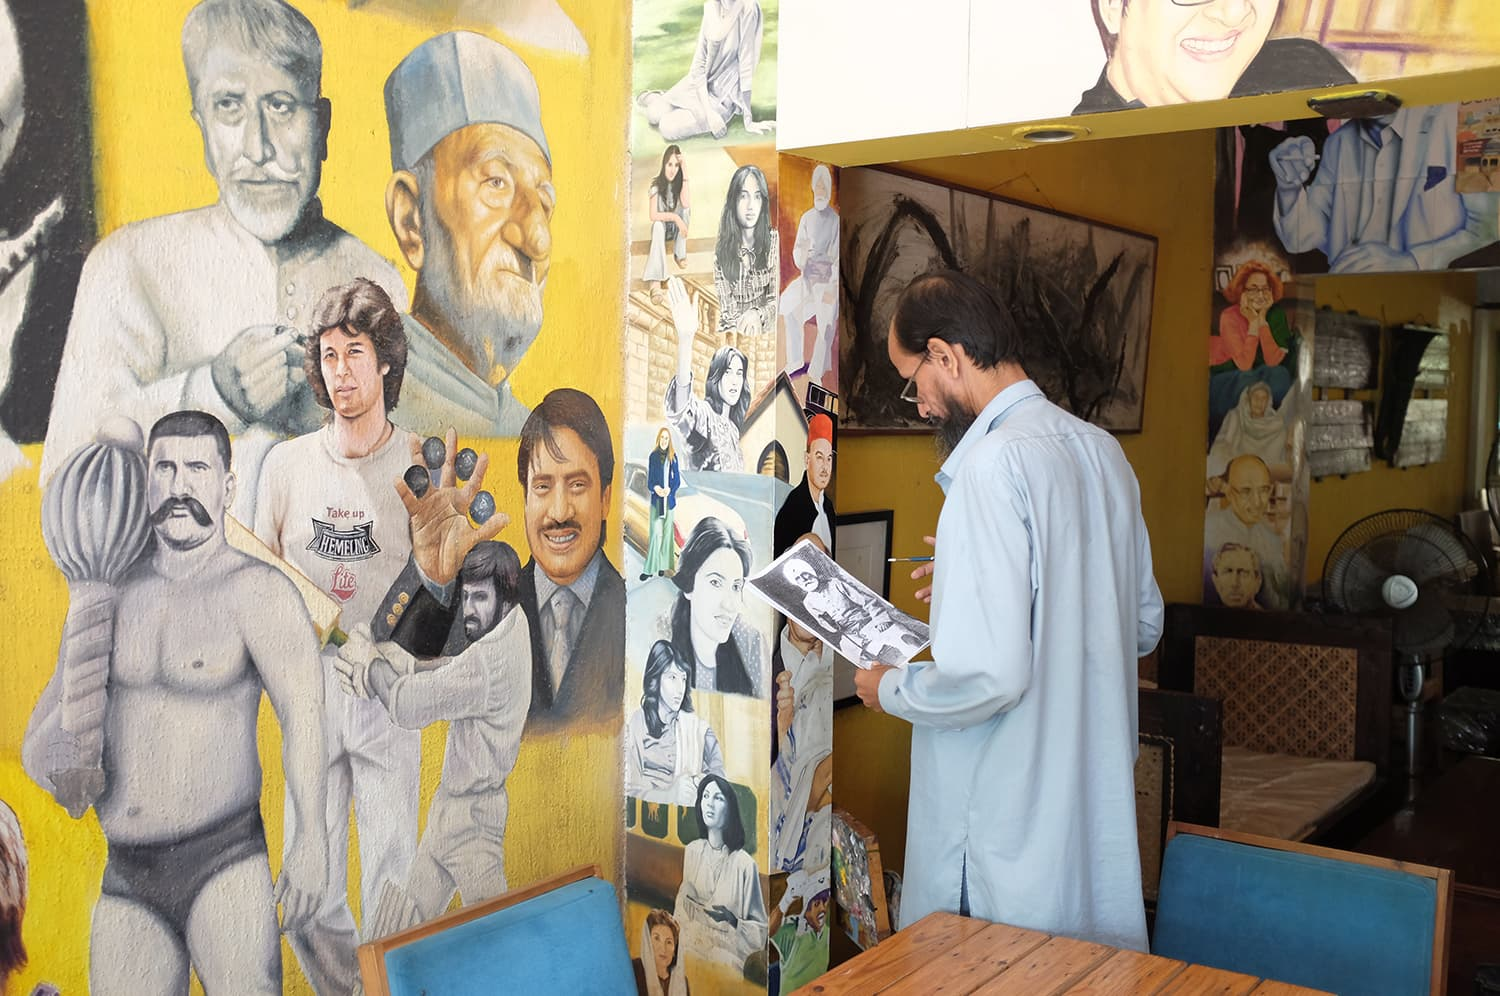 Irshad, the resident artist at Roadside cafe, paints a portrait on the wall.